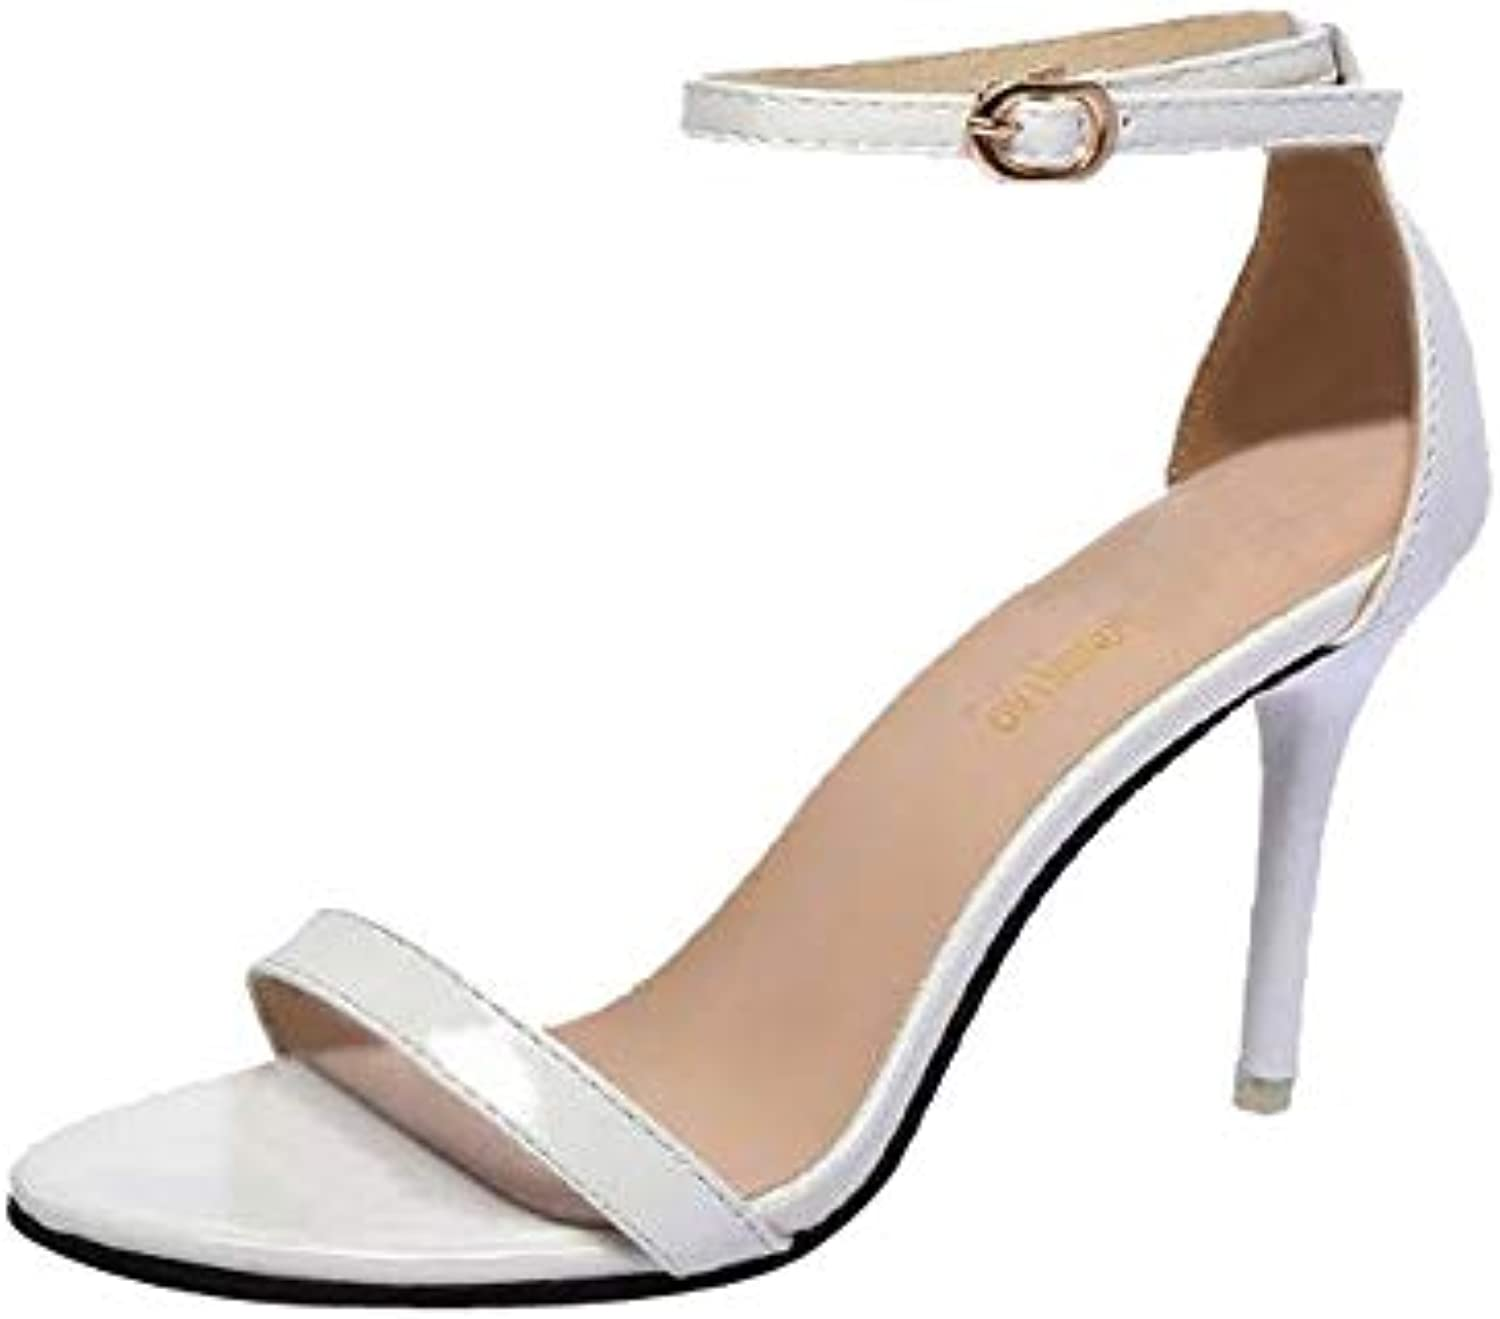 Yesmile chaussure Chaussures Femme, à Bout Pointu Femmes Chaussures Chaussures Femmes Plates à Talons BasB07H4FXN8KParent 227745